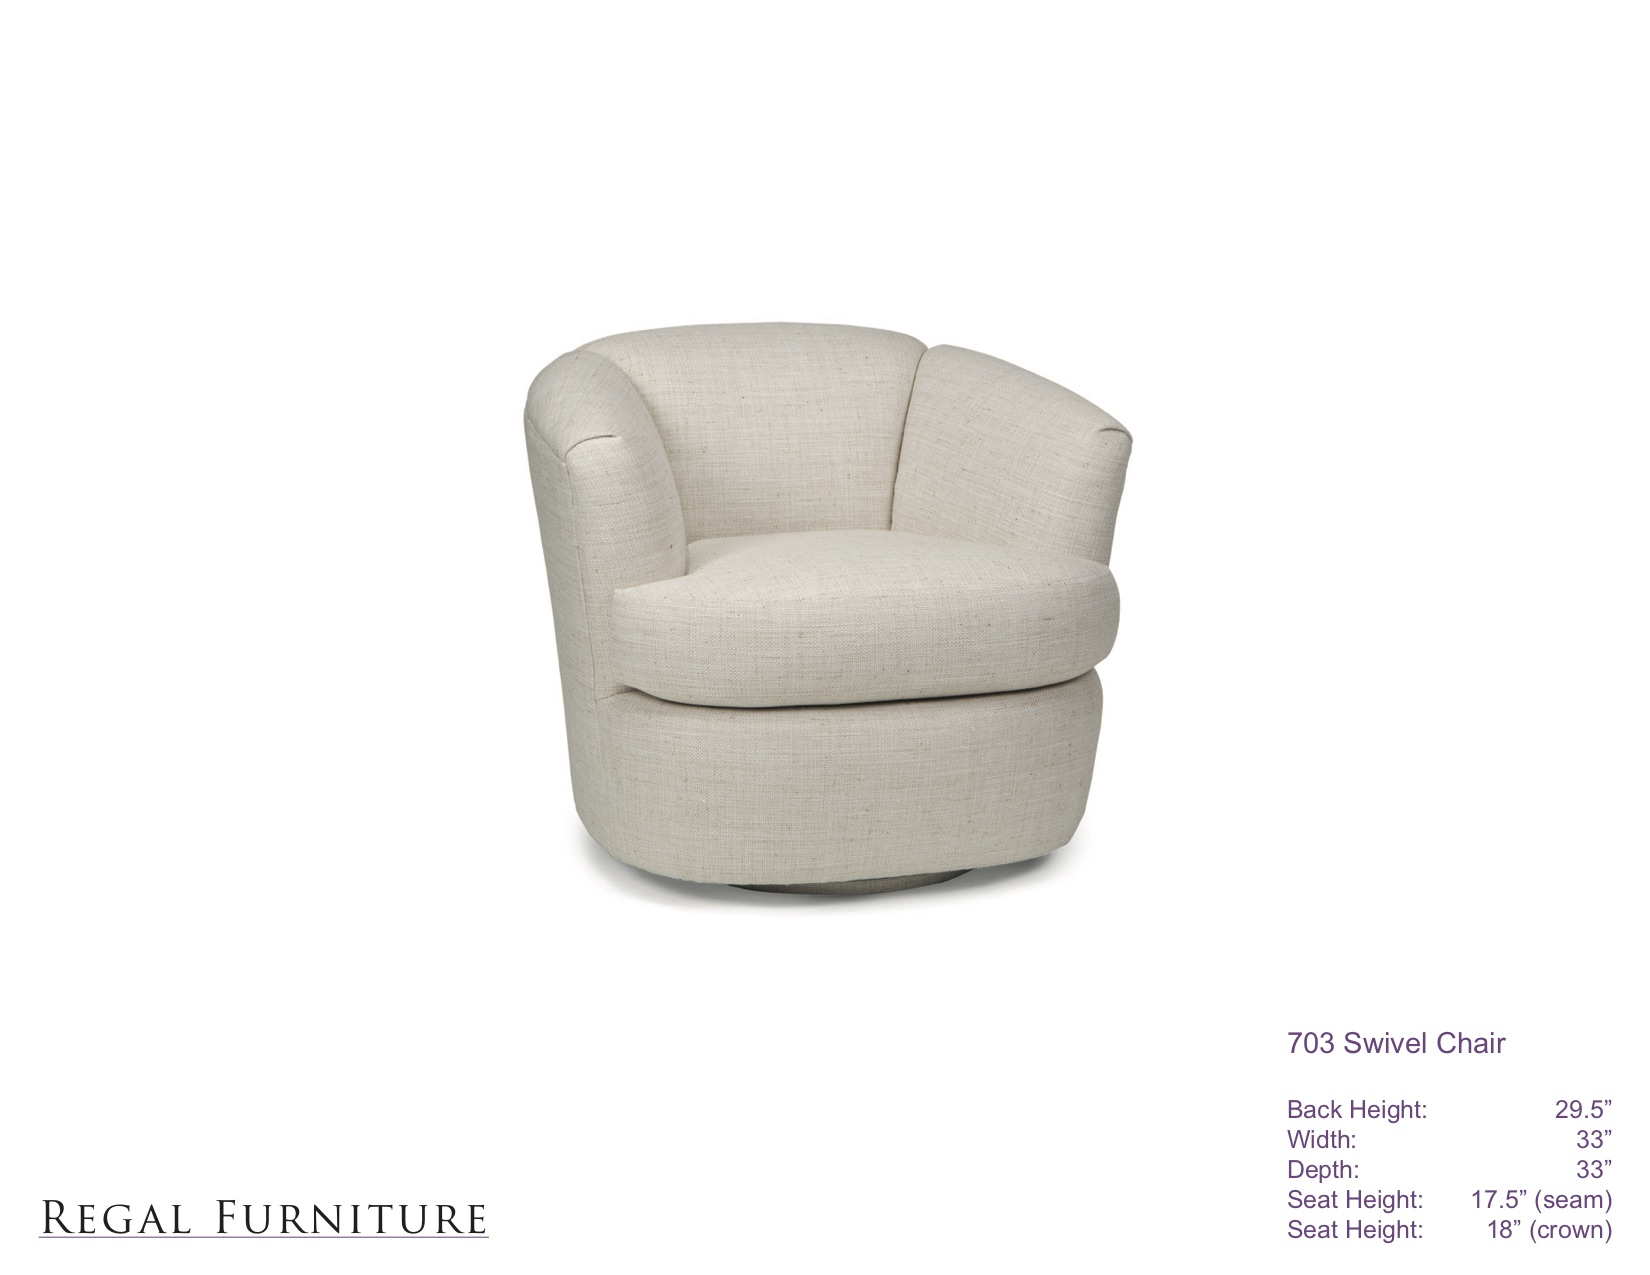 swivel chair regal colorful dining room chairs furniture 703swivel jpg